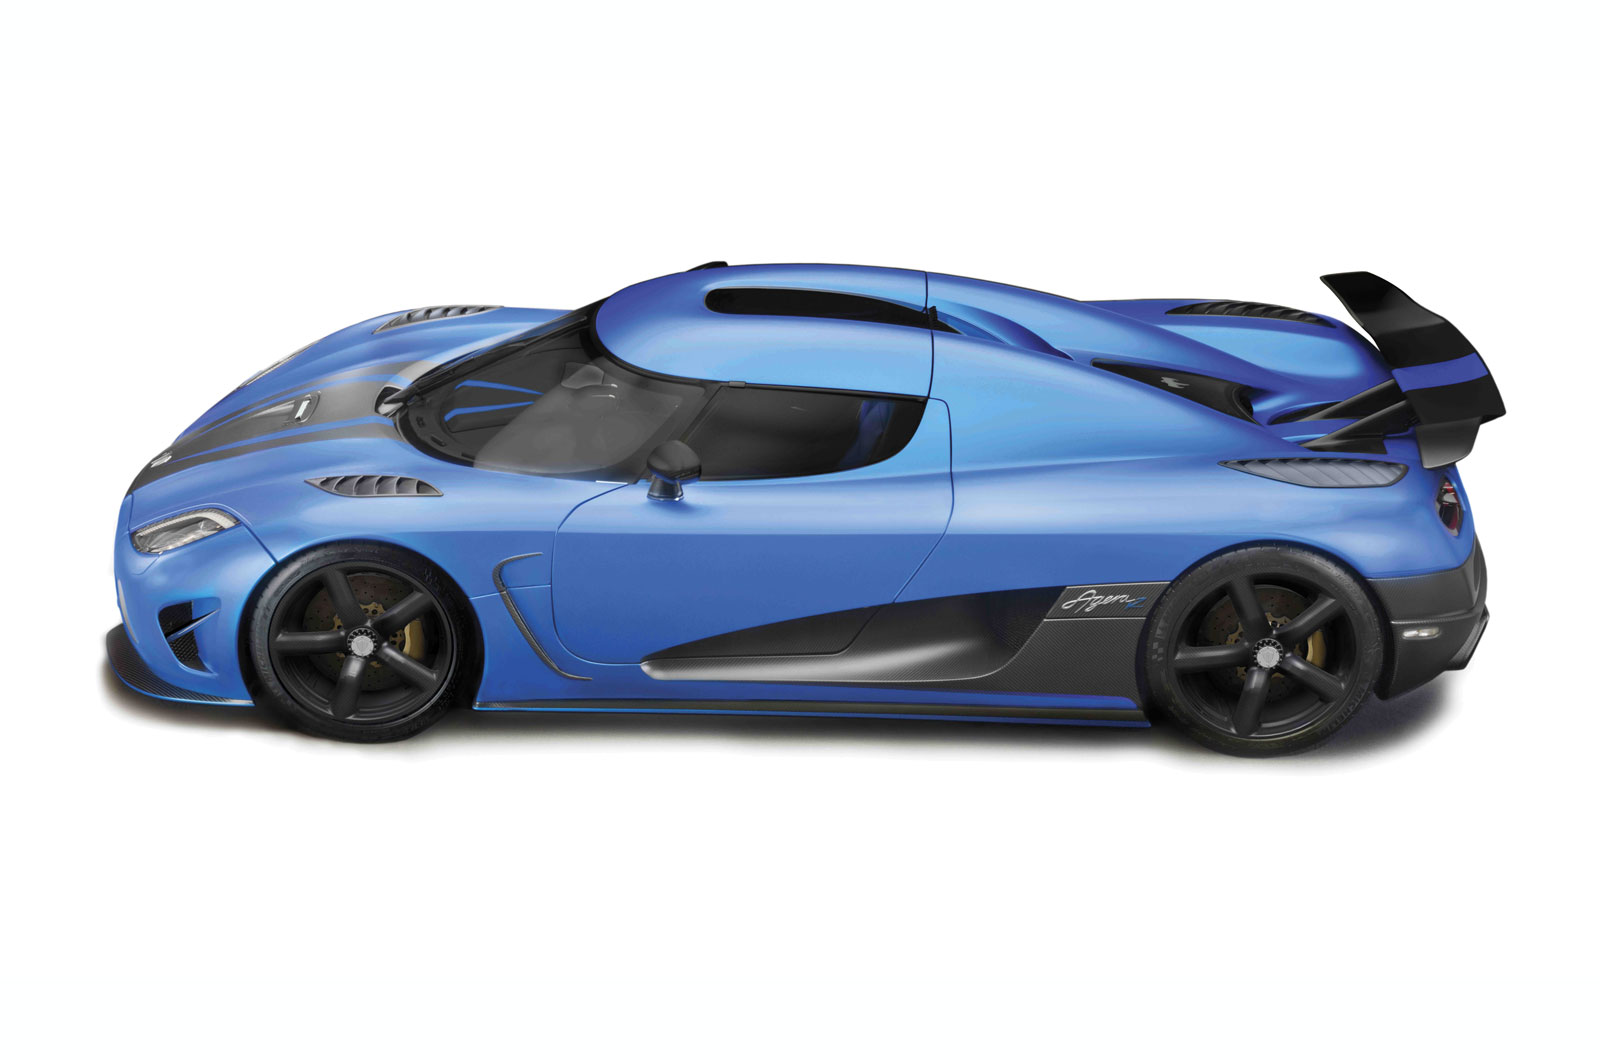 Sport Cars: Koenigsegg Agera R Hd Wallpapers 2013